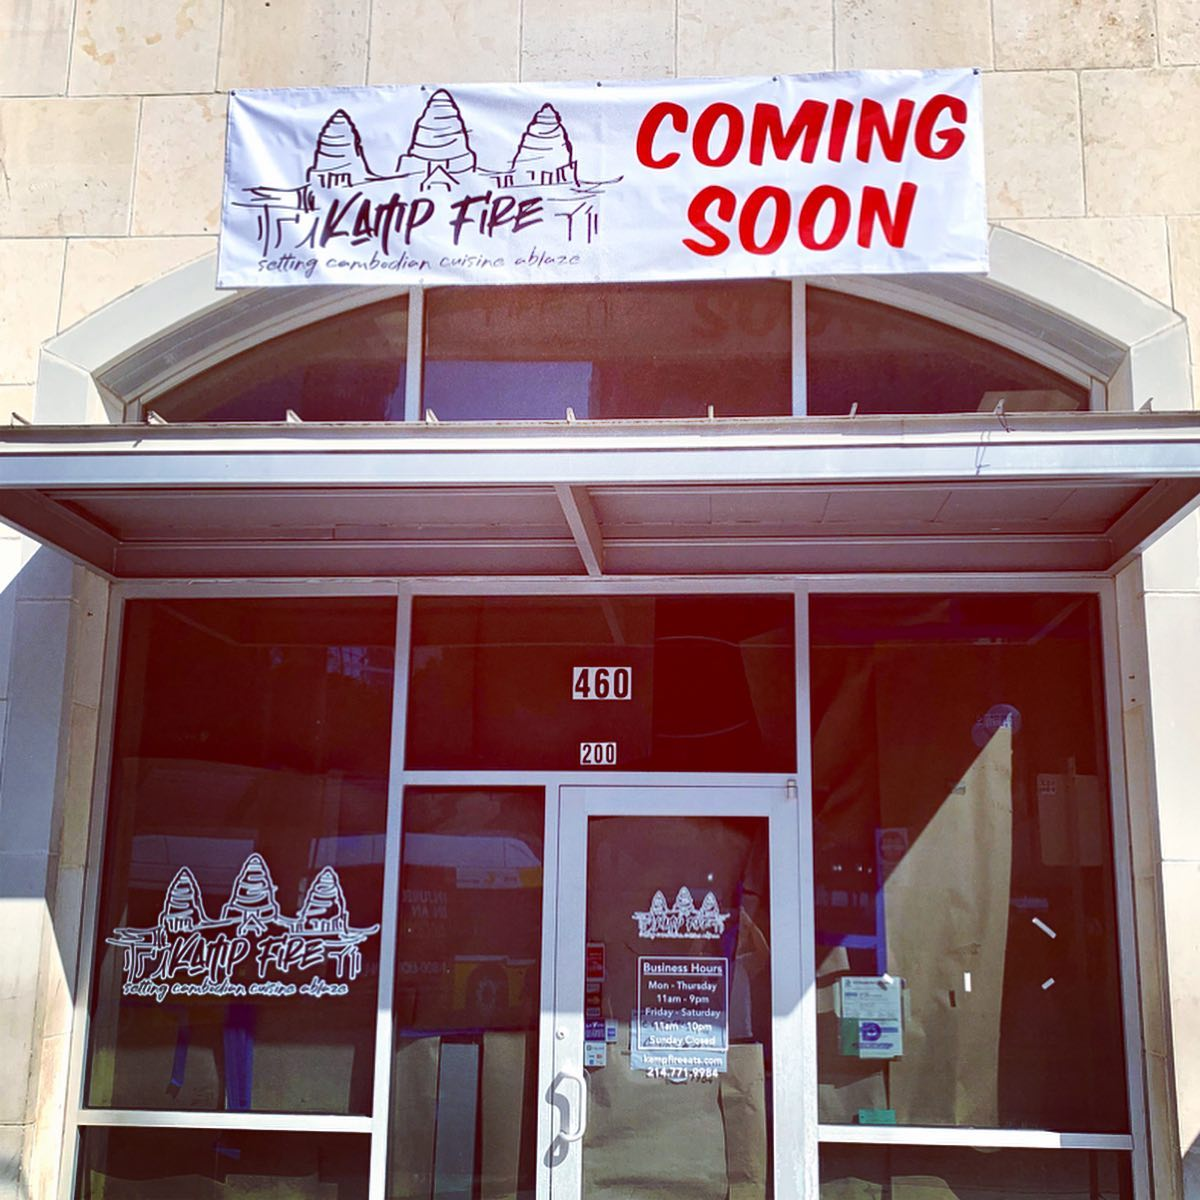 Cambodian Cuisine Arrives in Downtown Dallas Next Week